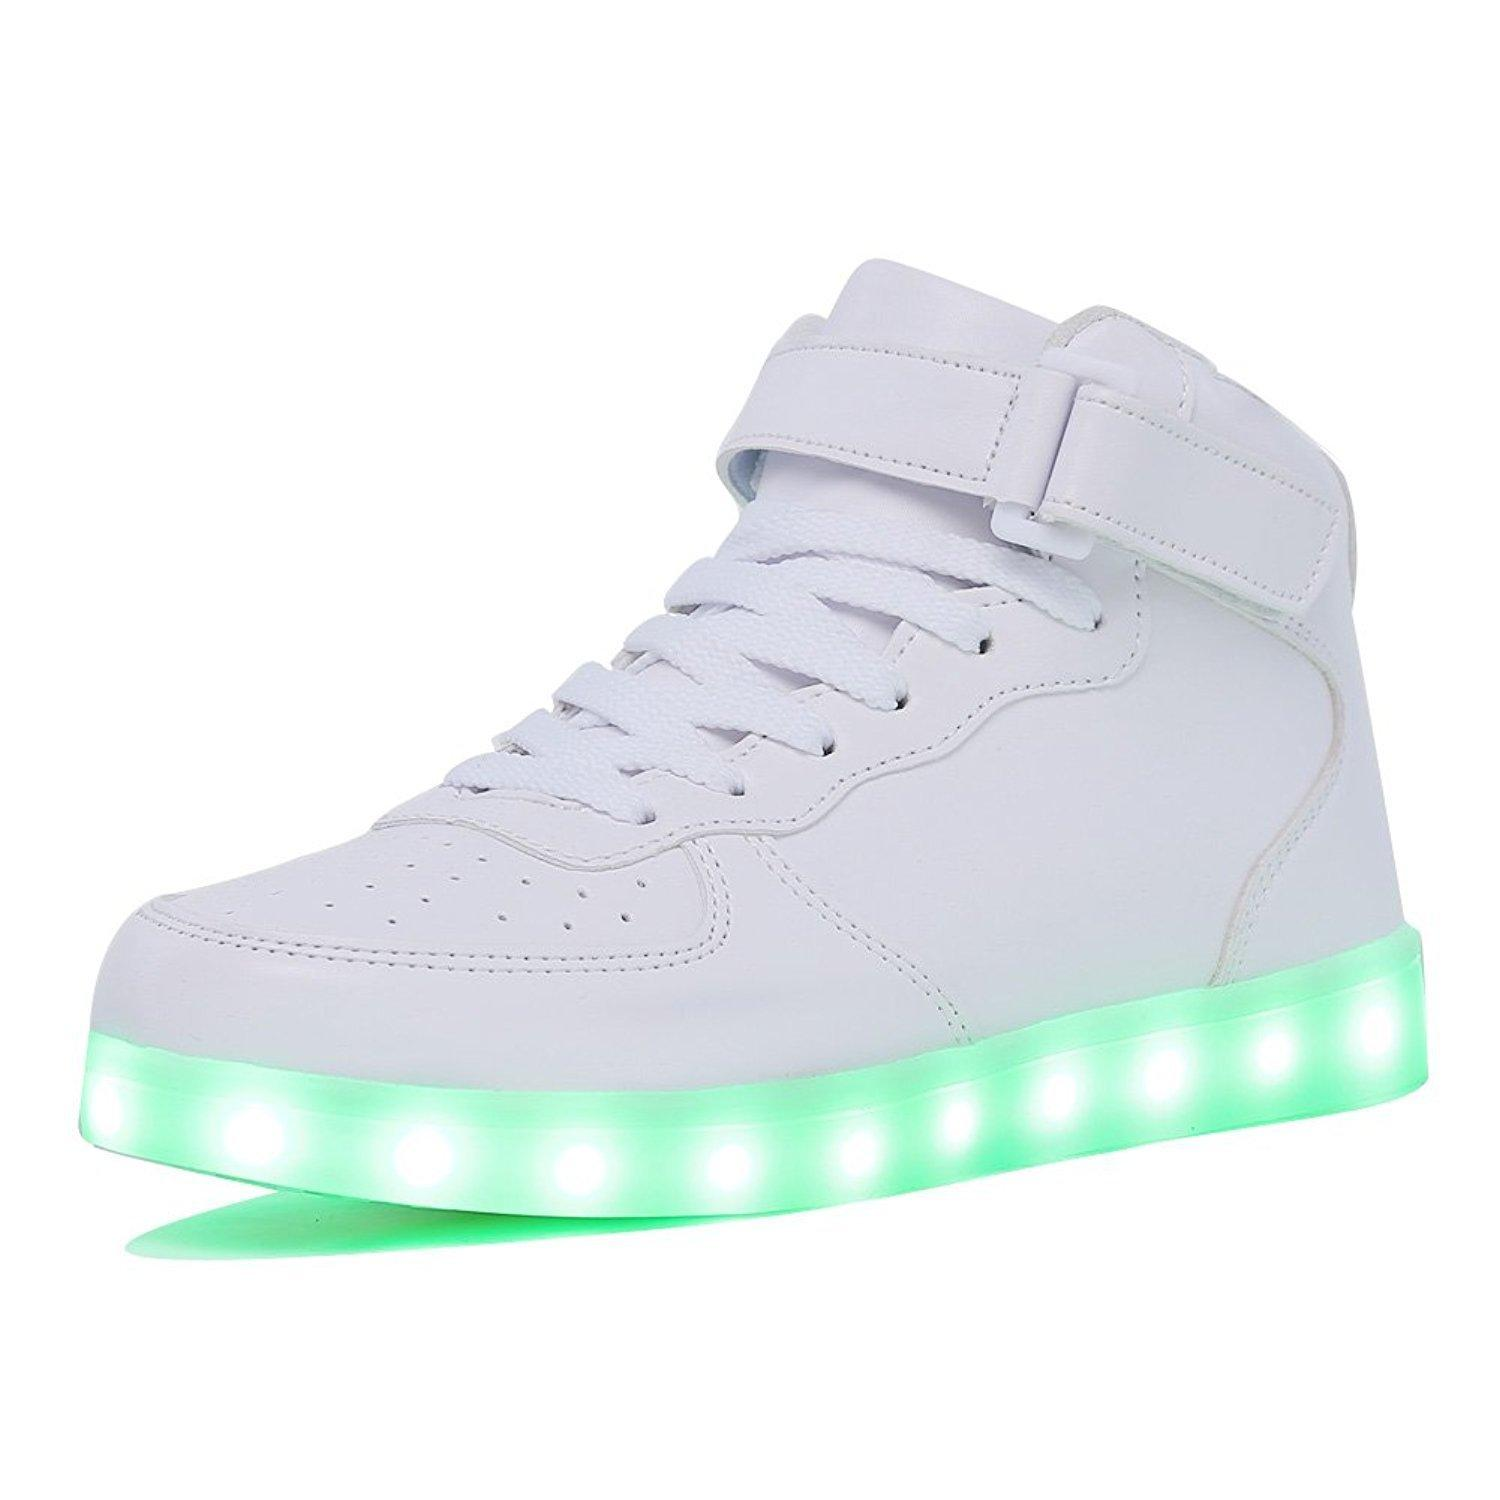 Kriativ Adult&kids Boy And Girl's High Top Led Light Up Shoes Glowing Sneakers Luminous Sole Sneakers For Women&men Y190523